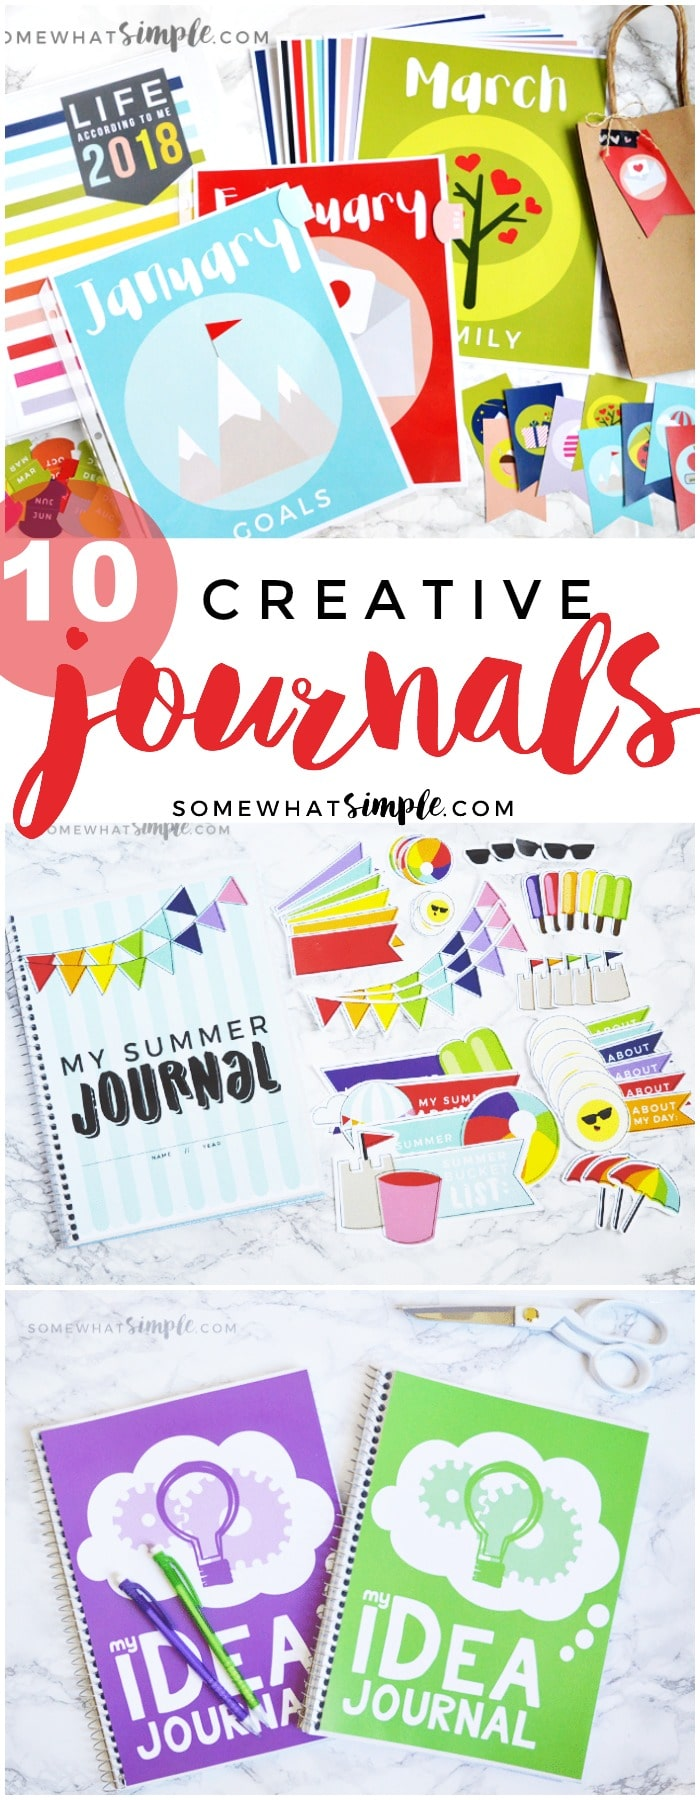 Capture life's ups and downs, the things that make you smile, and everything you're grateful for with these creative journal ideas!